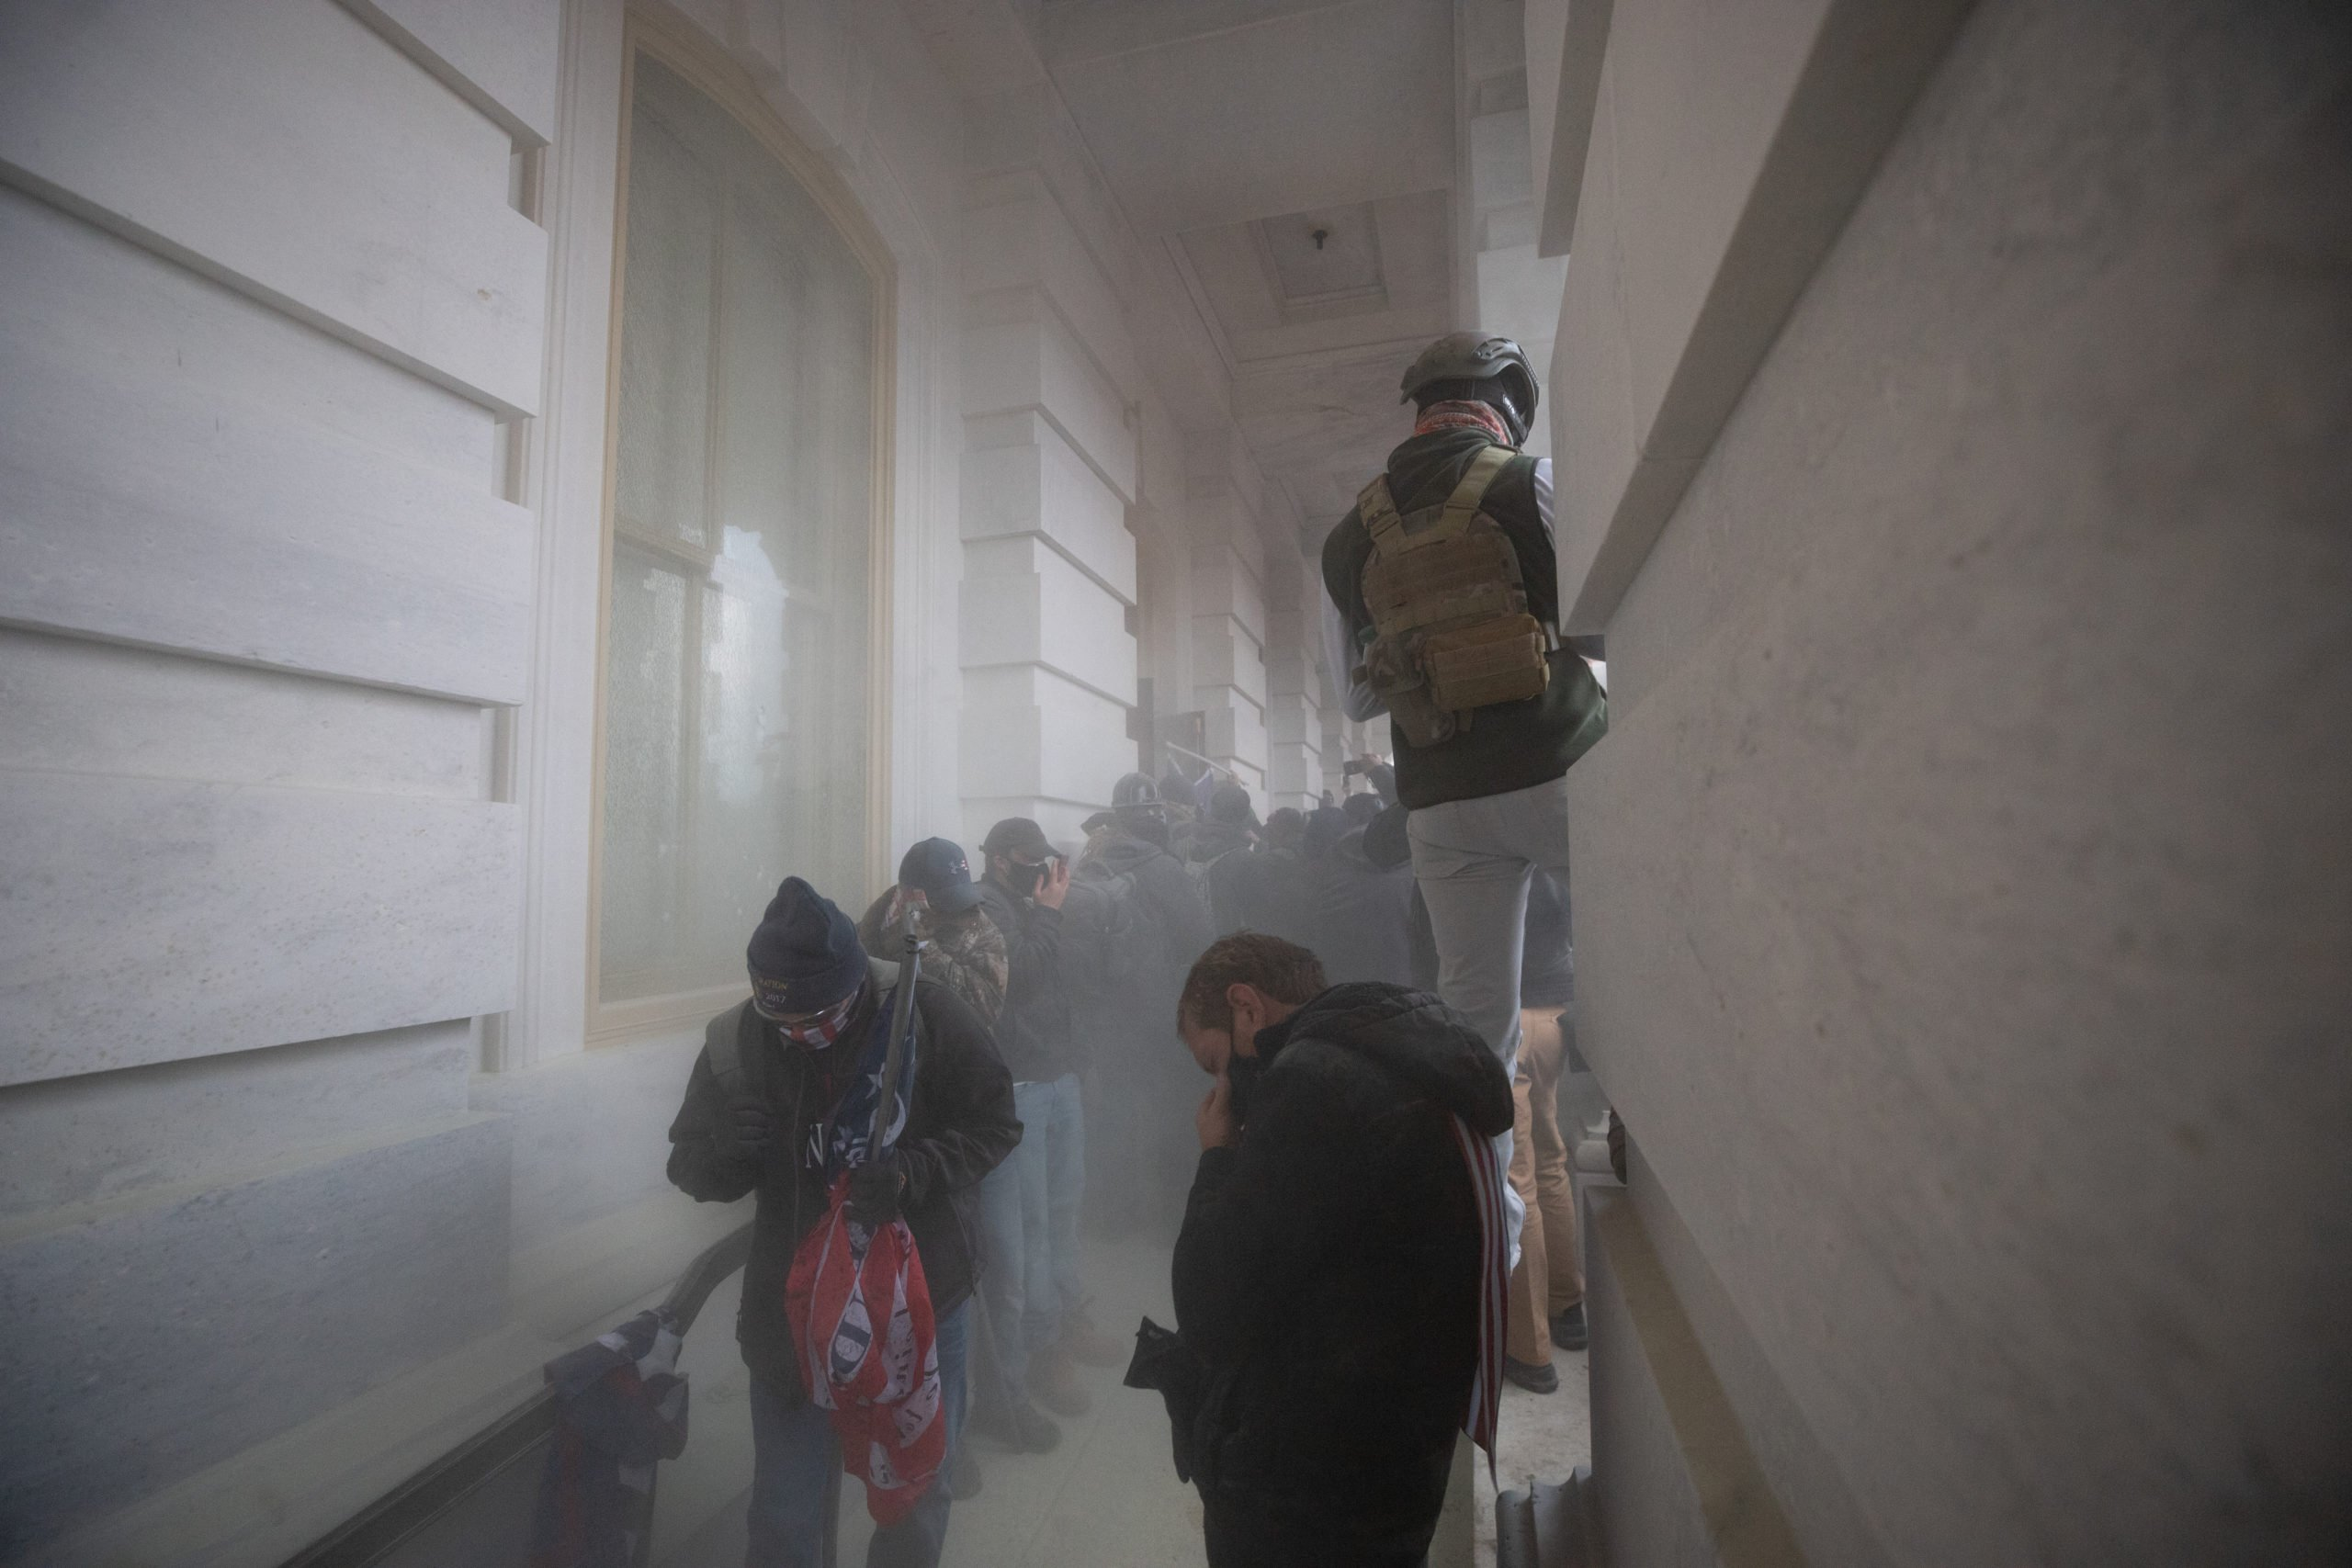 A chemical agent was deployed against protesters attempting to enter the Capitol Building from a side door in Washington, D.C. on Jan. 6, 2021. (Kaylee Greenlee - Daily Caller News Foundation)